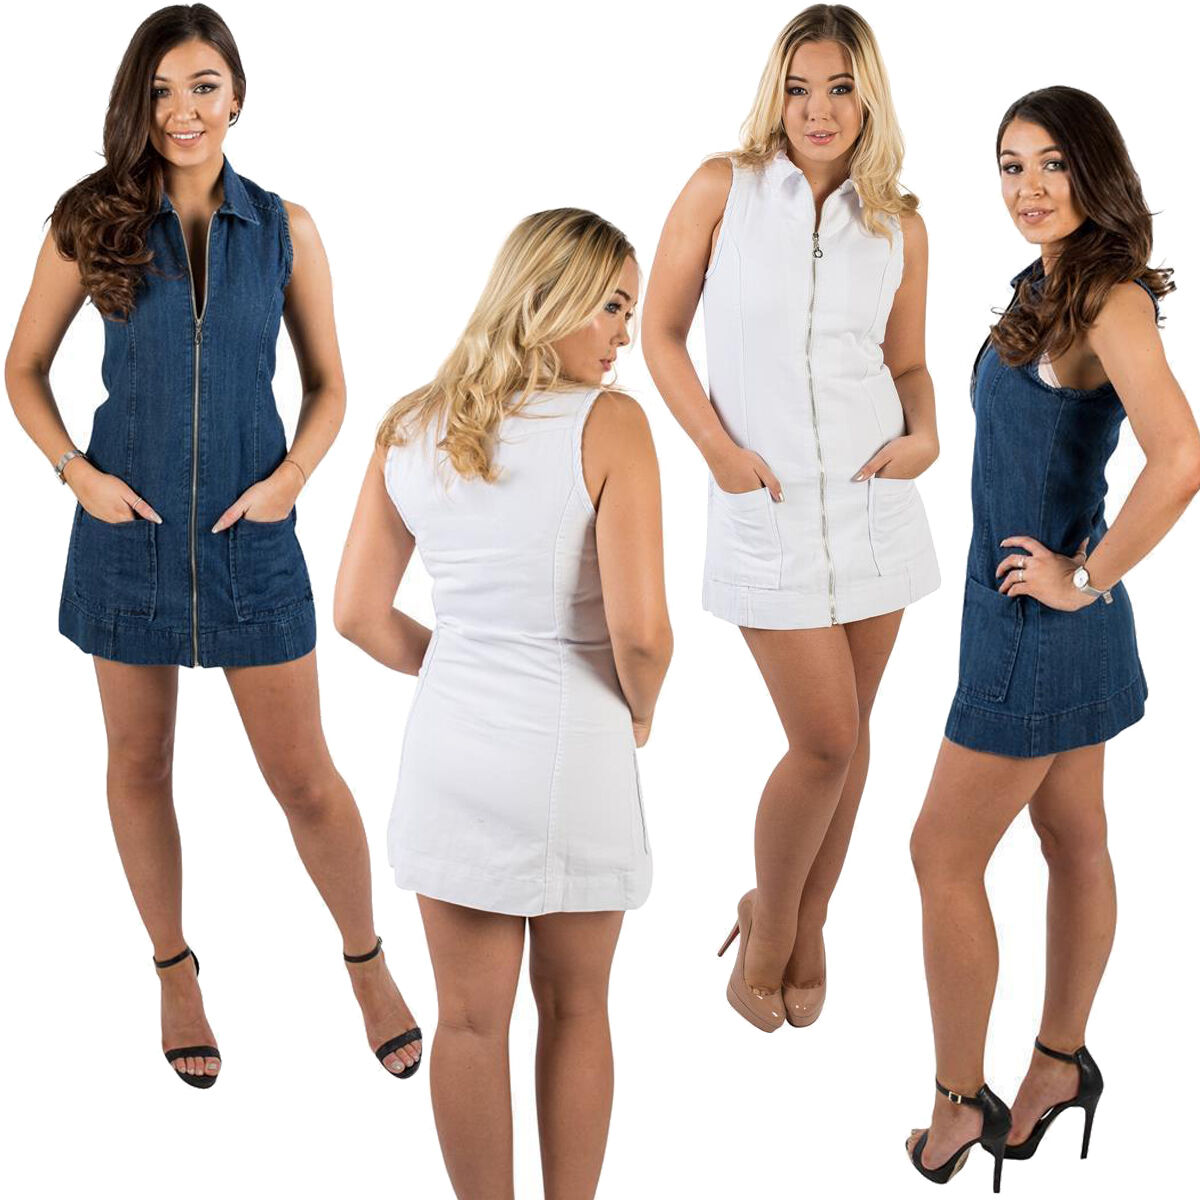 b21f7897dfd New Women Denim Sleeveless Front Zip Pockets Shirt Collar Mini Short Dress  6